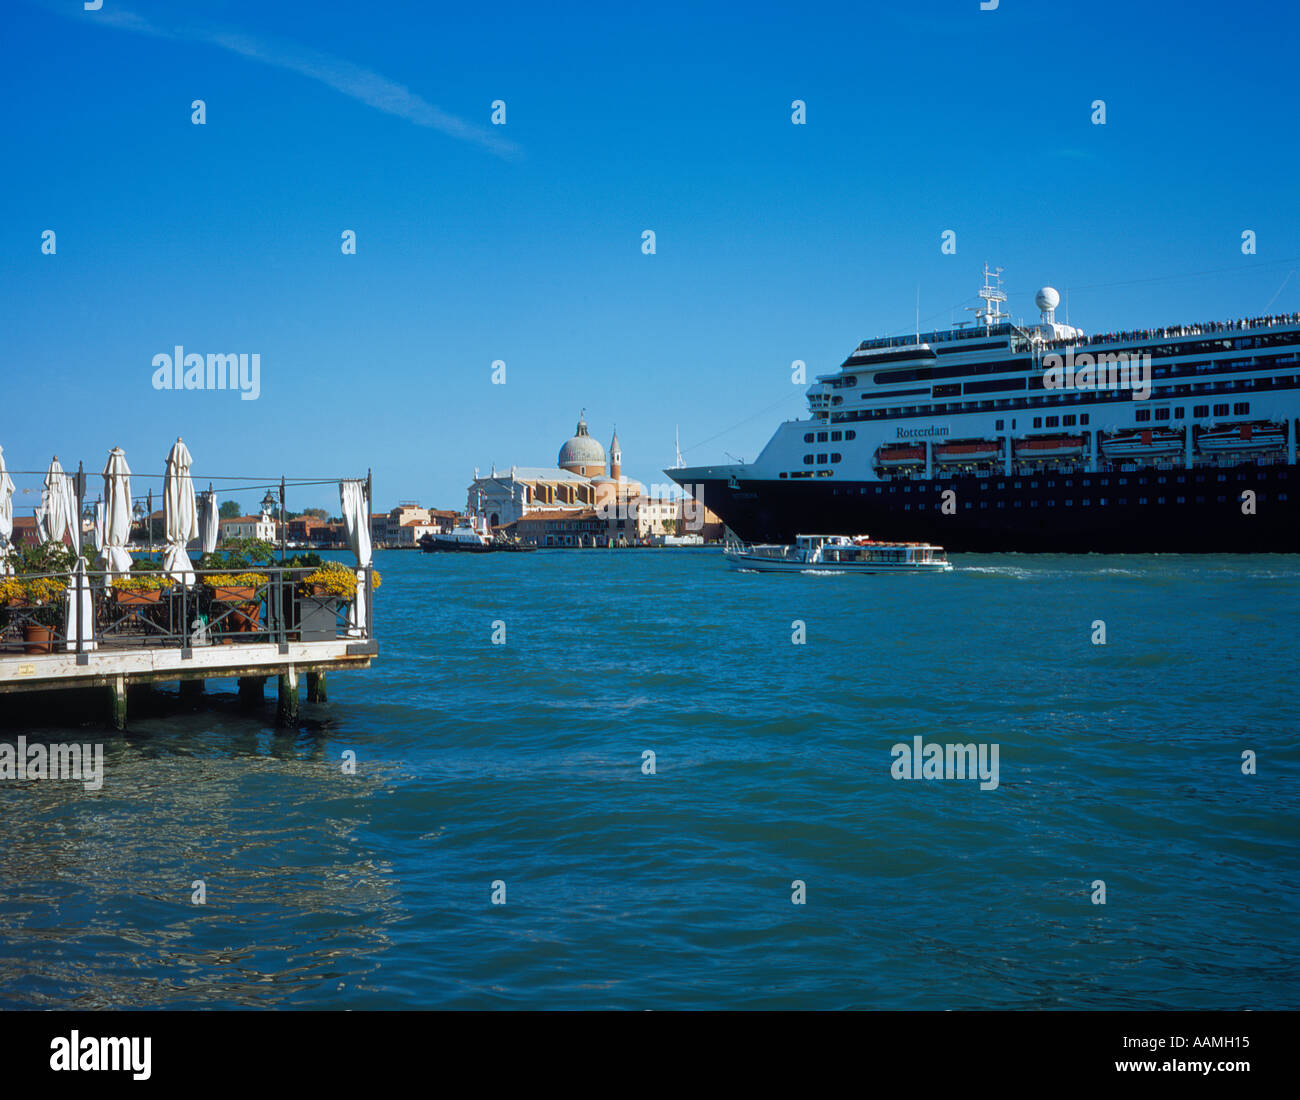 ocean liner Rotterdam at Canale della Guidecca, Venice,UNESCO World Heritage Site, Italy, Europe. Photo by Willy - Stock Image